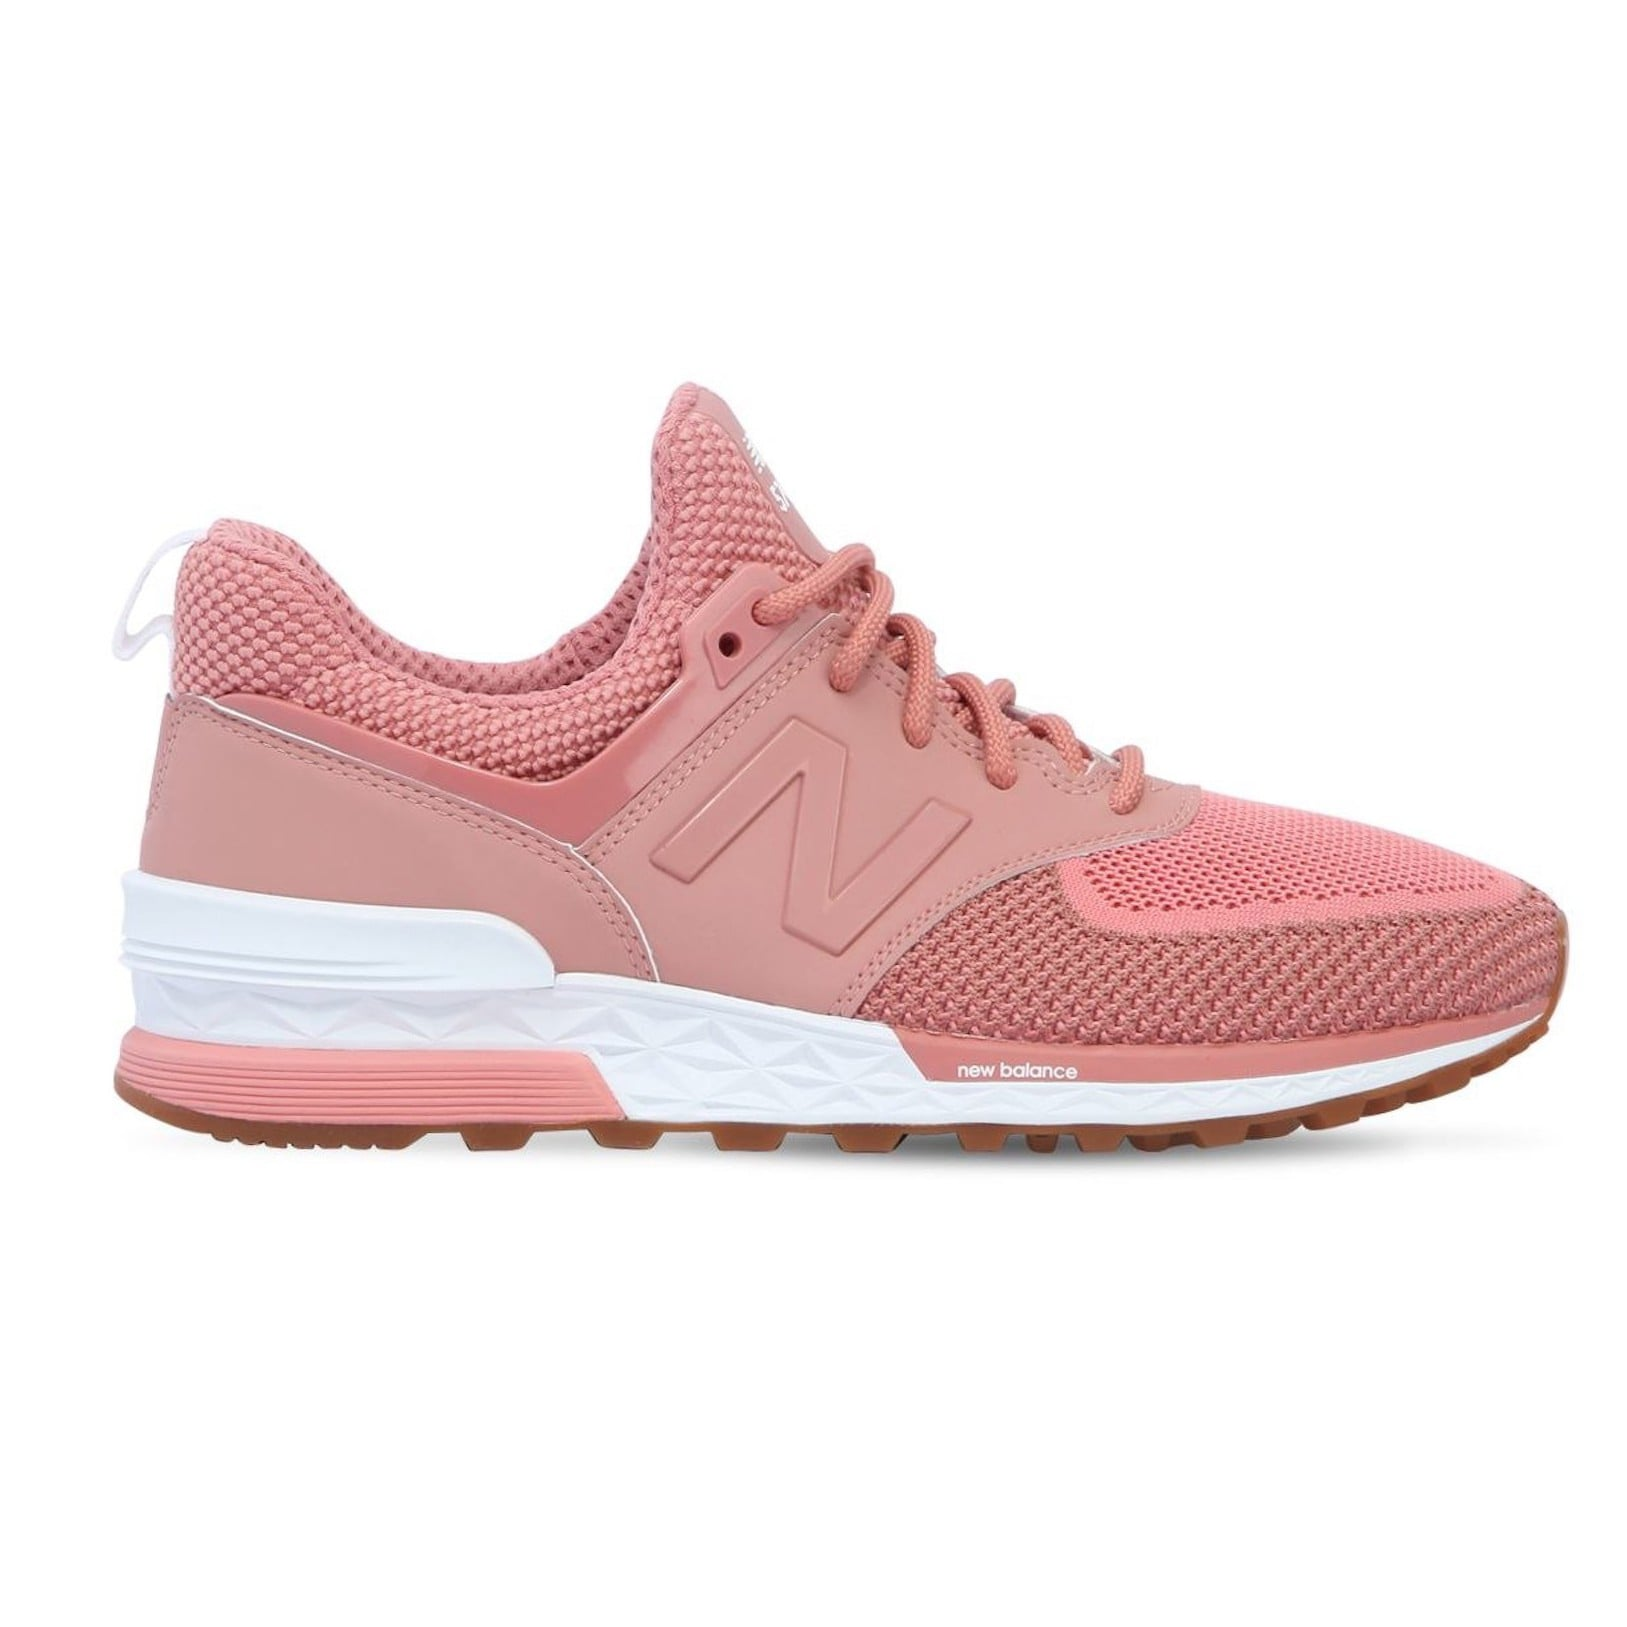 4b5645500 Best New Balance Sneakers 2018 | POPSUGAR Fitness